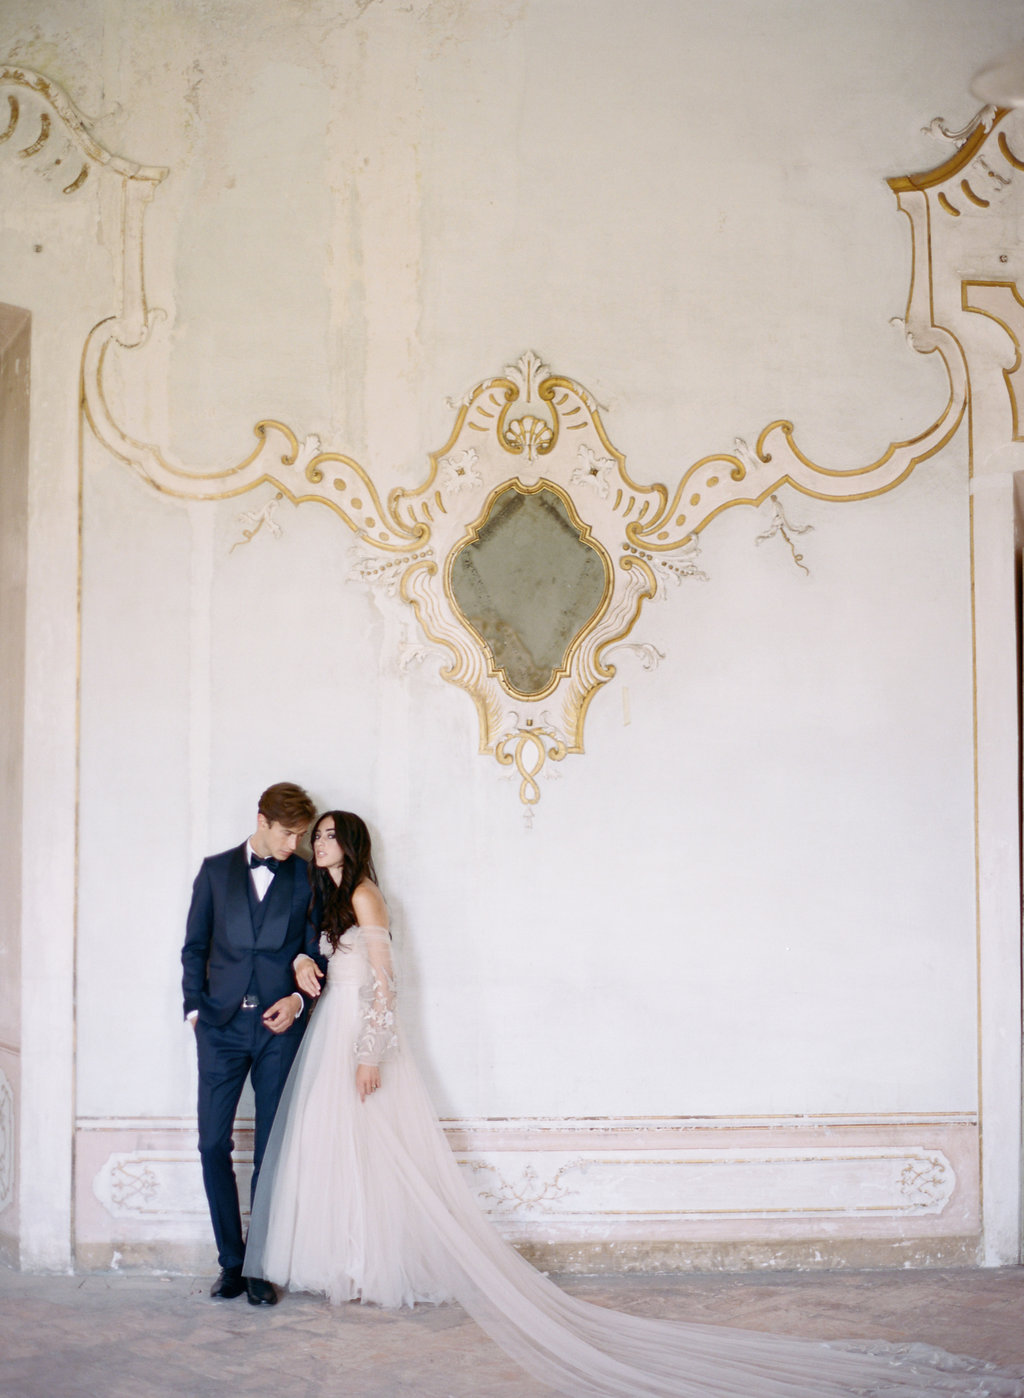 VillaArconatiItalyWeddingKatieGrantPhoto(162of339).jpg